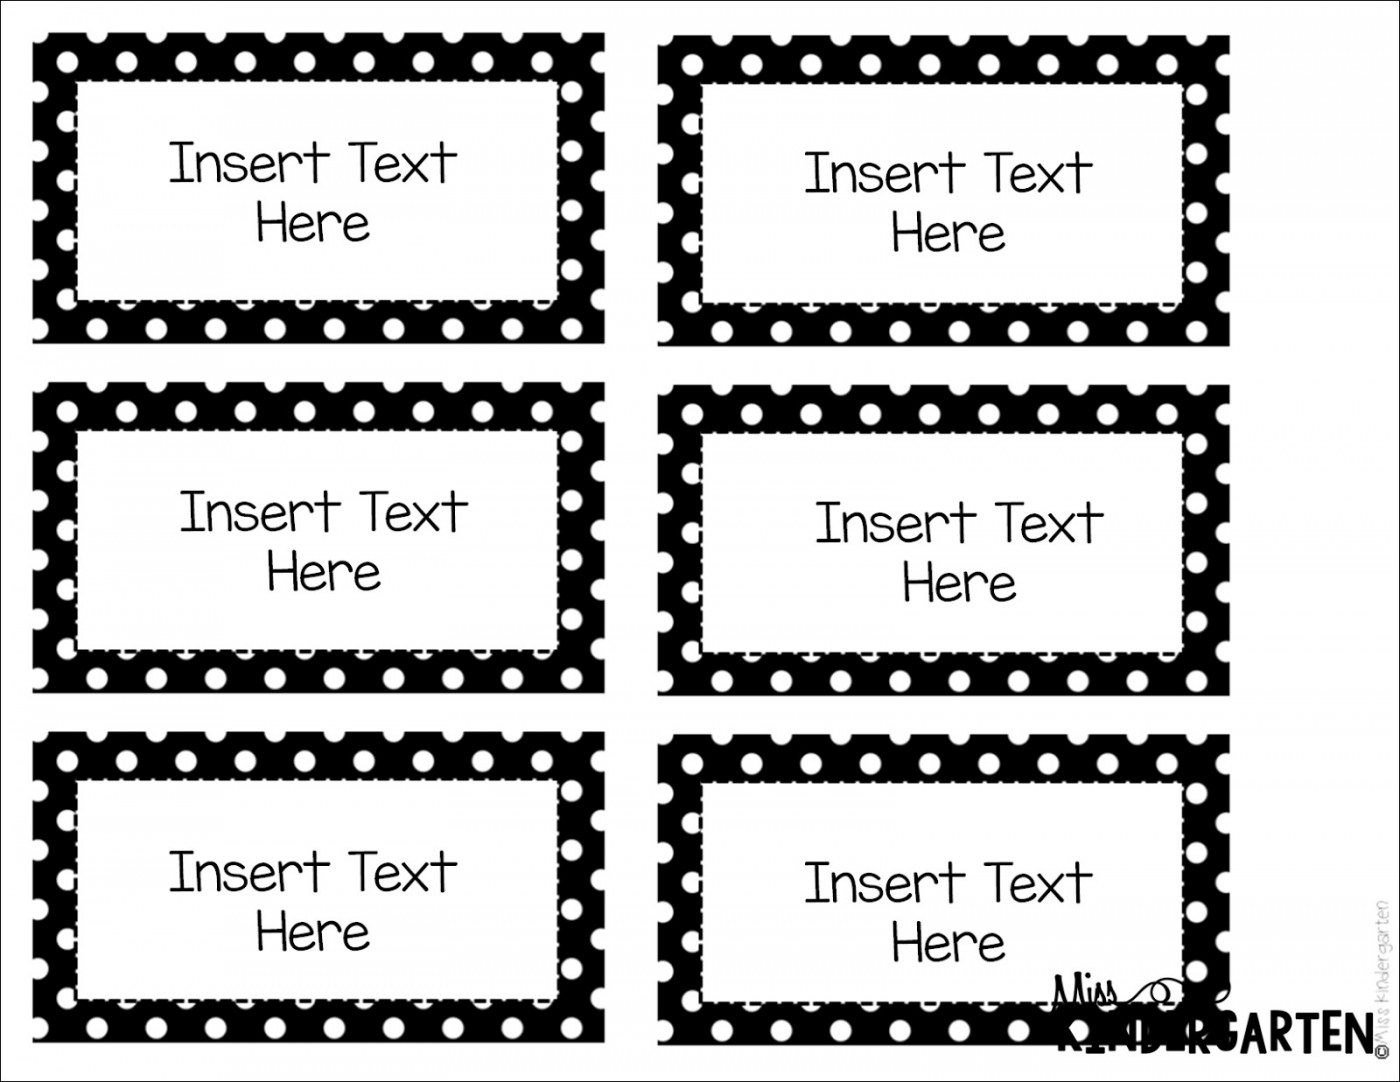 017 Free Printable Labels Template Ideas Circle Soap Label Templates - Free Printable Labels Avery 5160